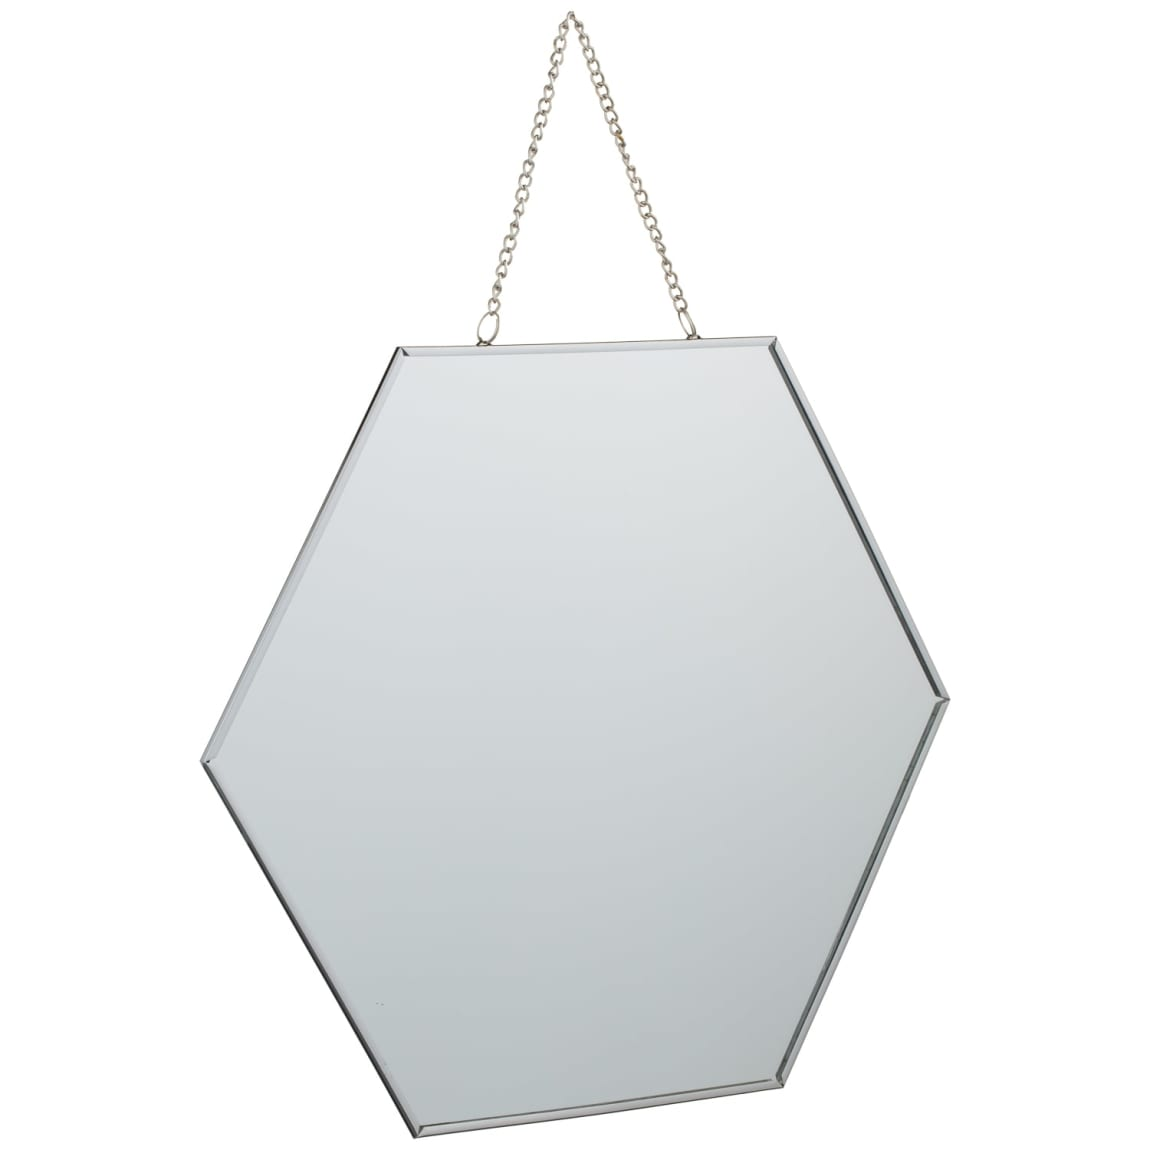 Hanging Hexagonal Mirror